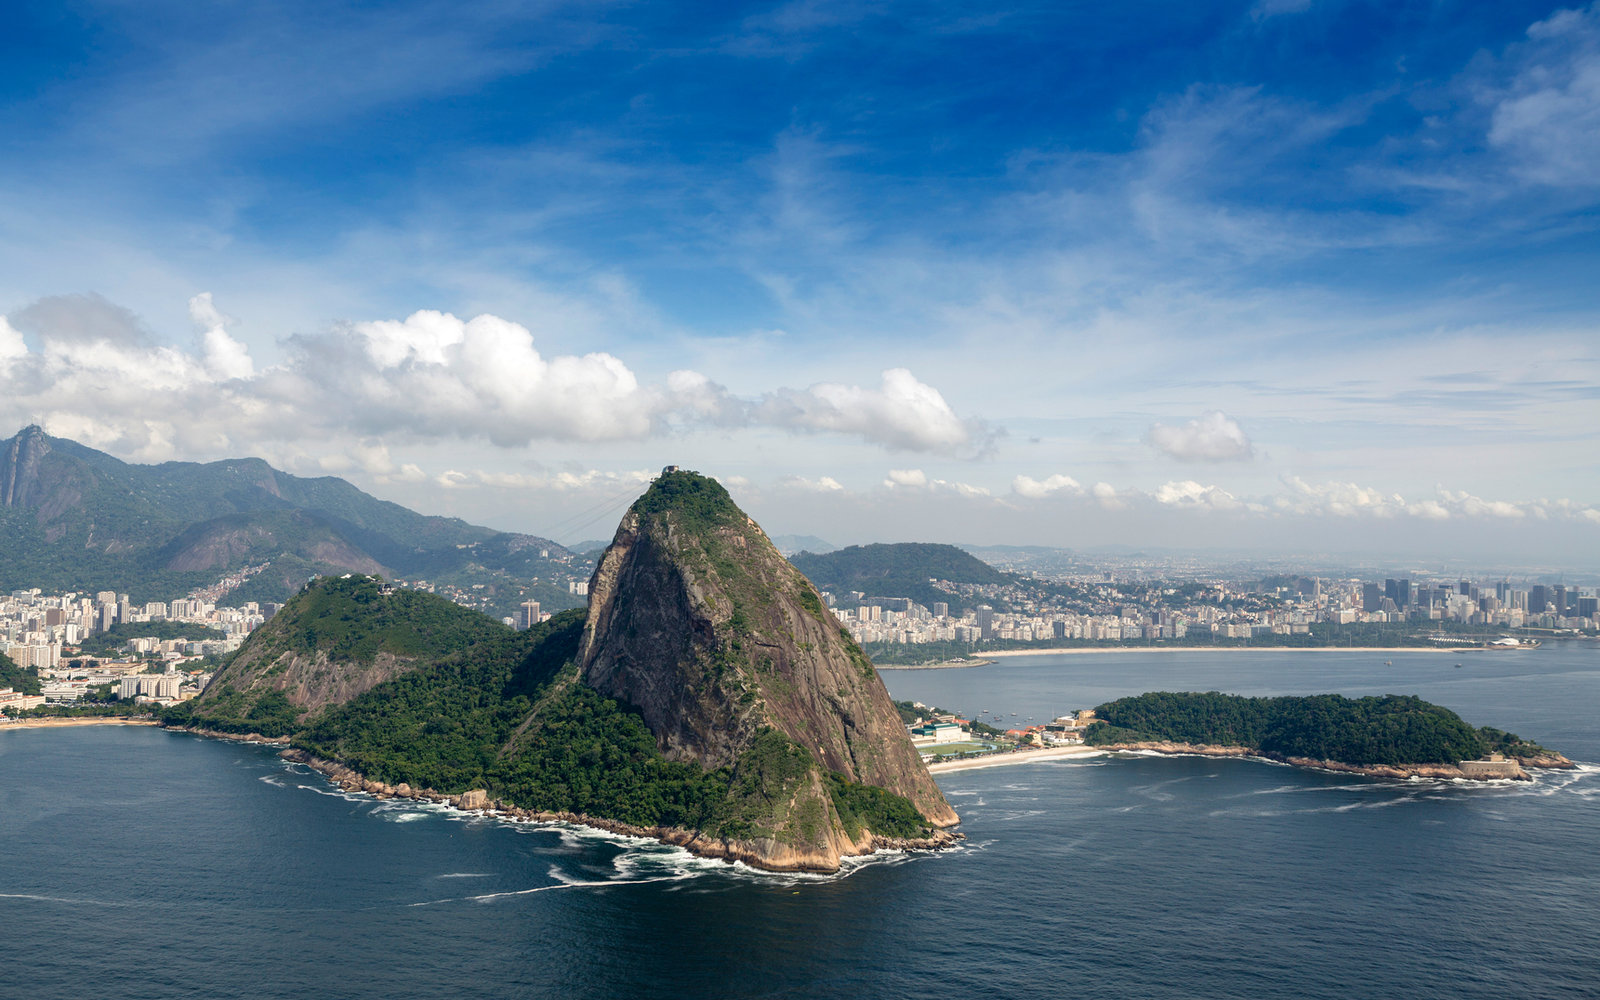 Visit Sugarloaf Mountain